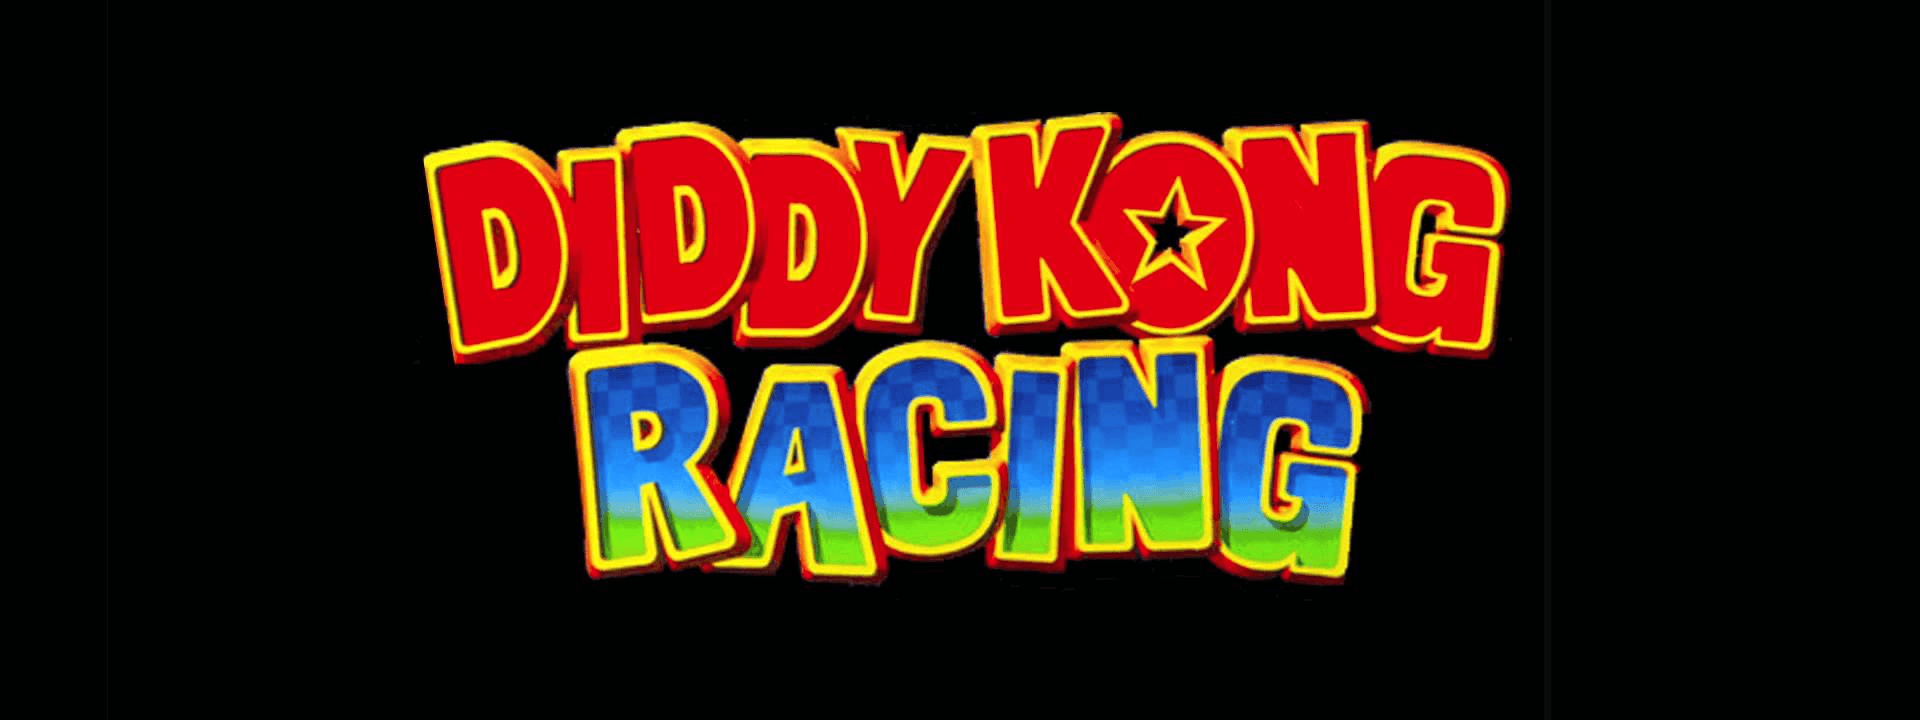 The main logo of Diddy Kong Racing.